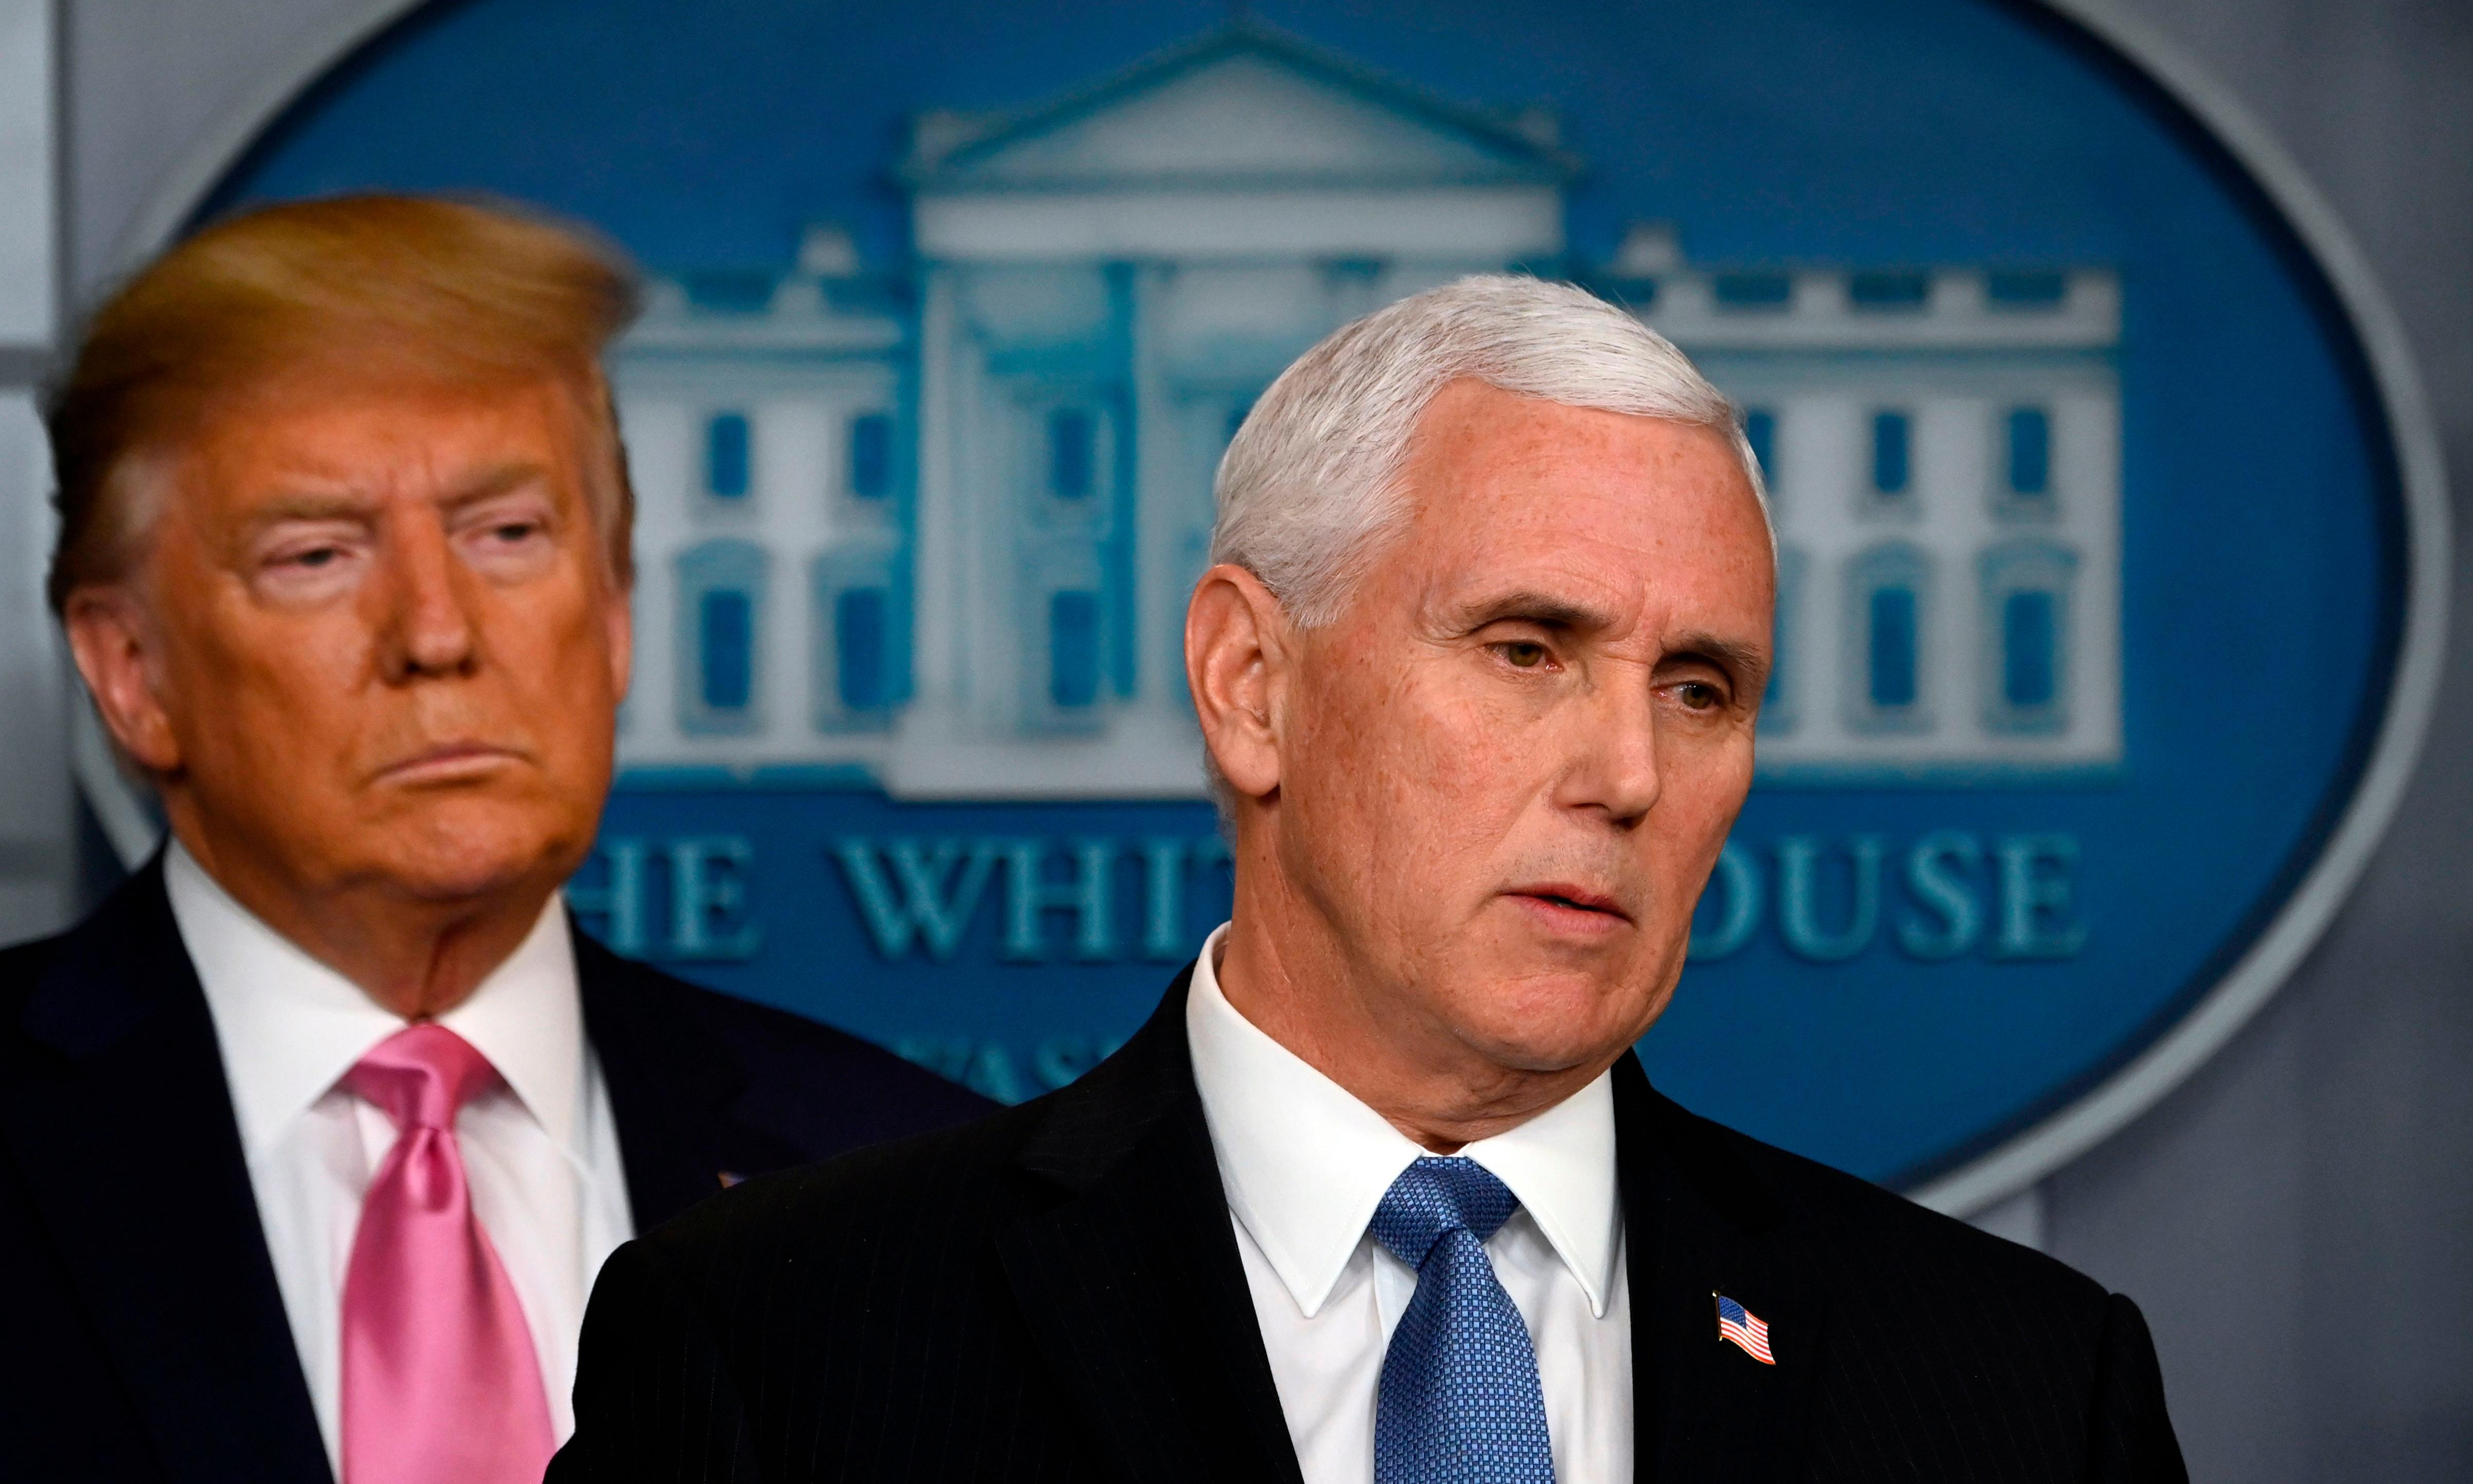 Mike Pence 'not up to task' of leading US coronavirus response, say experts